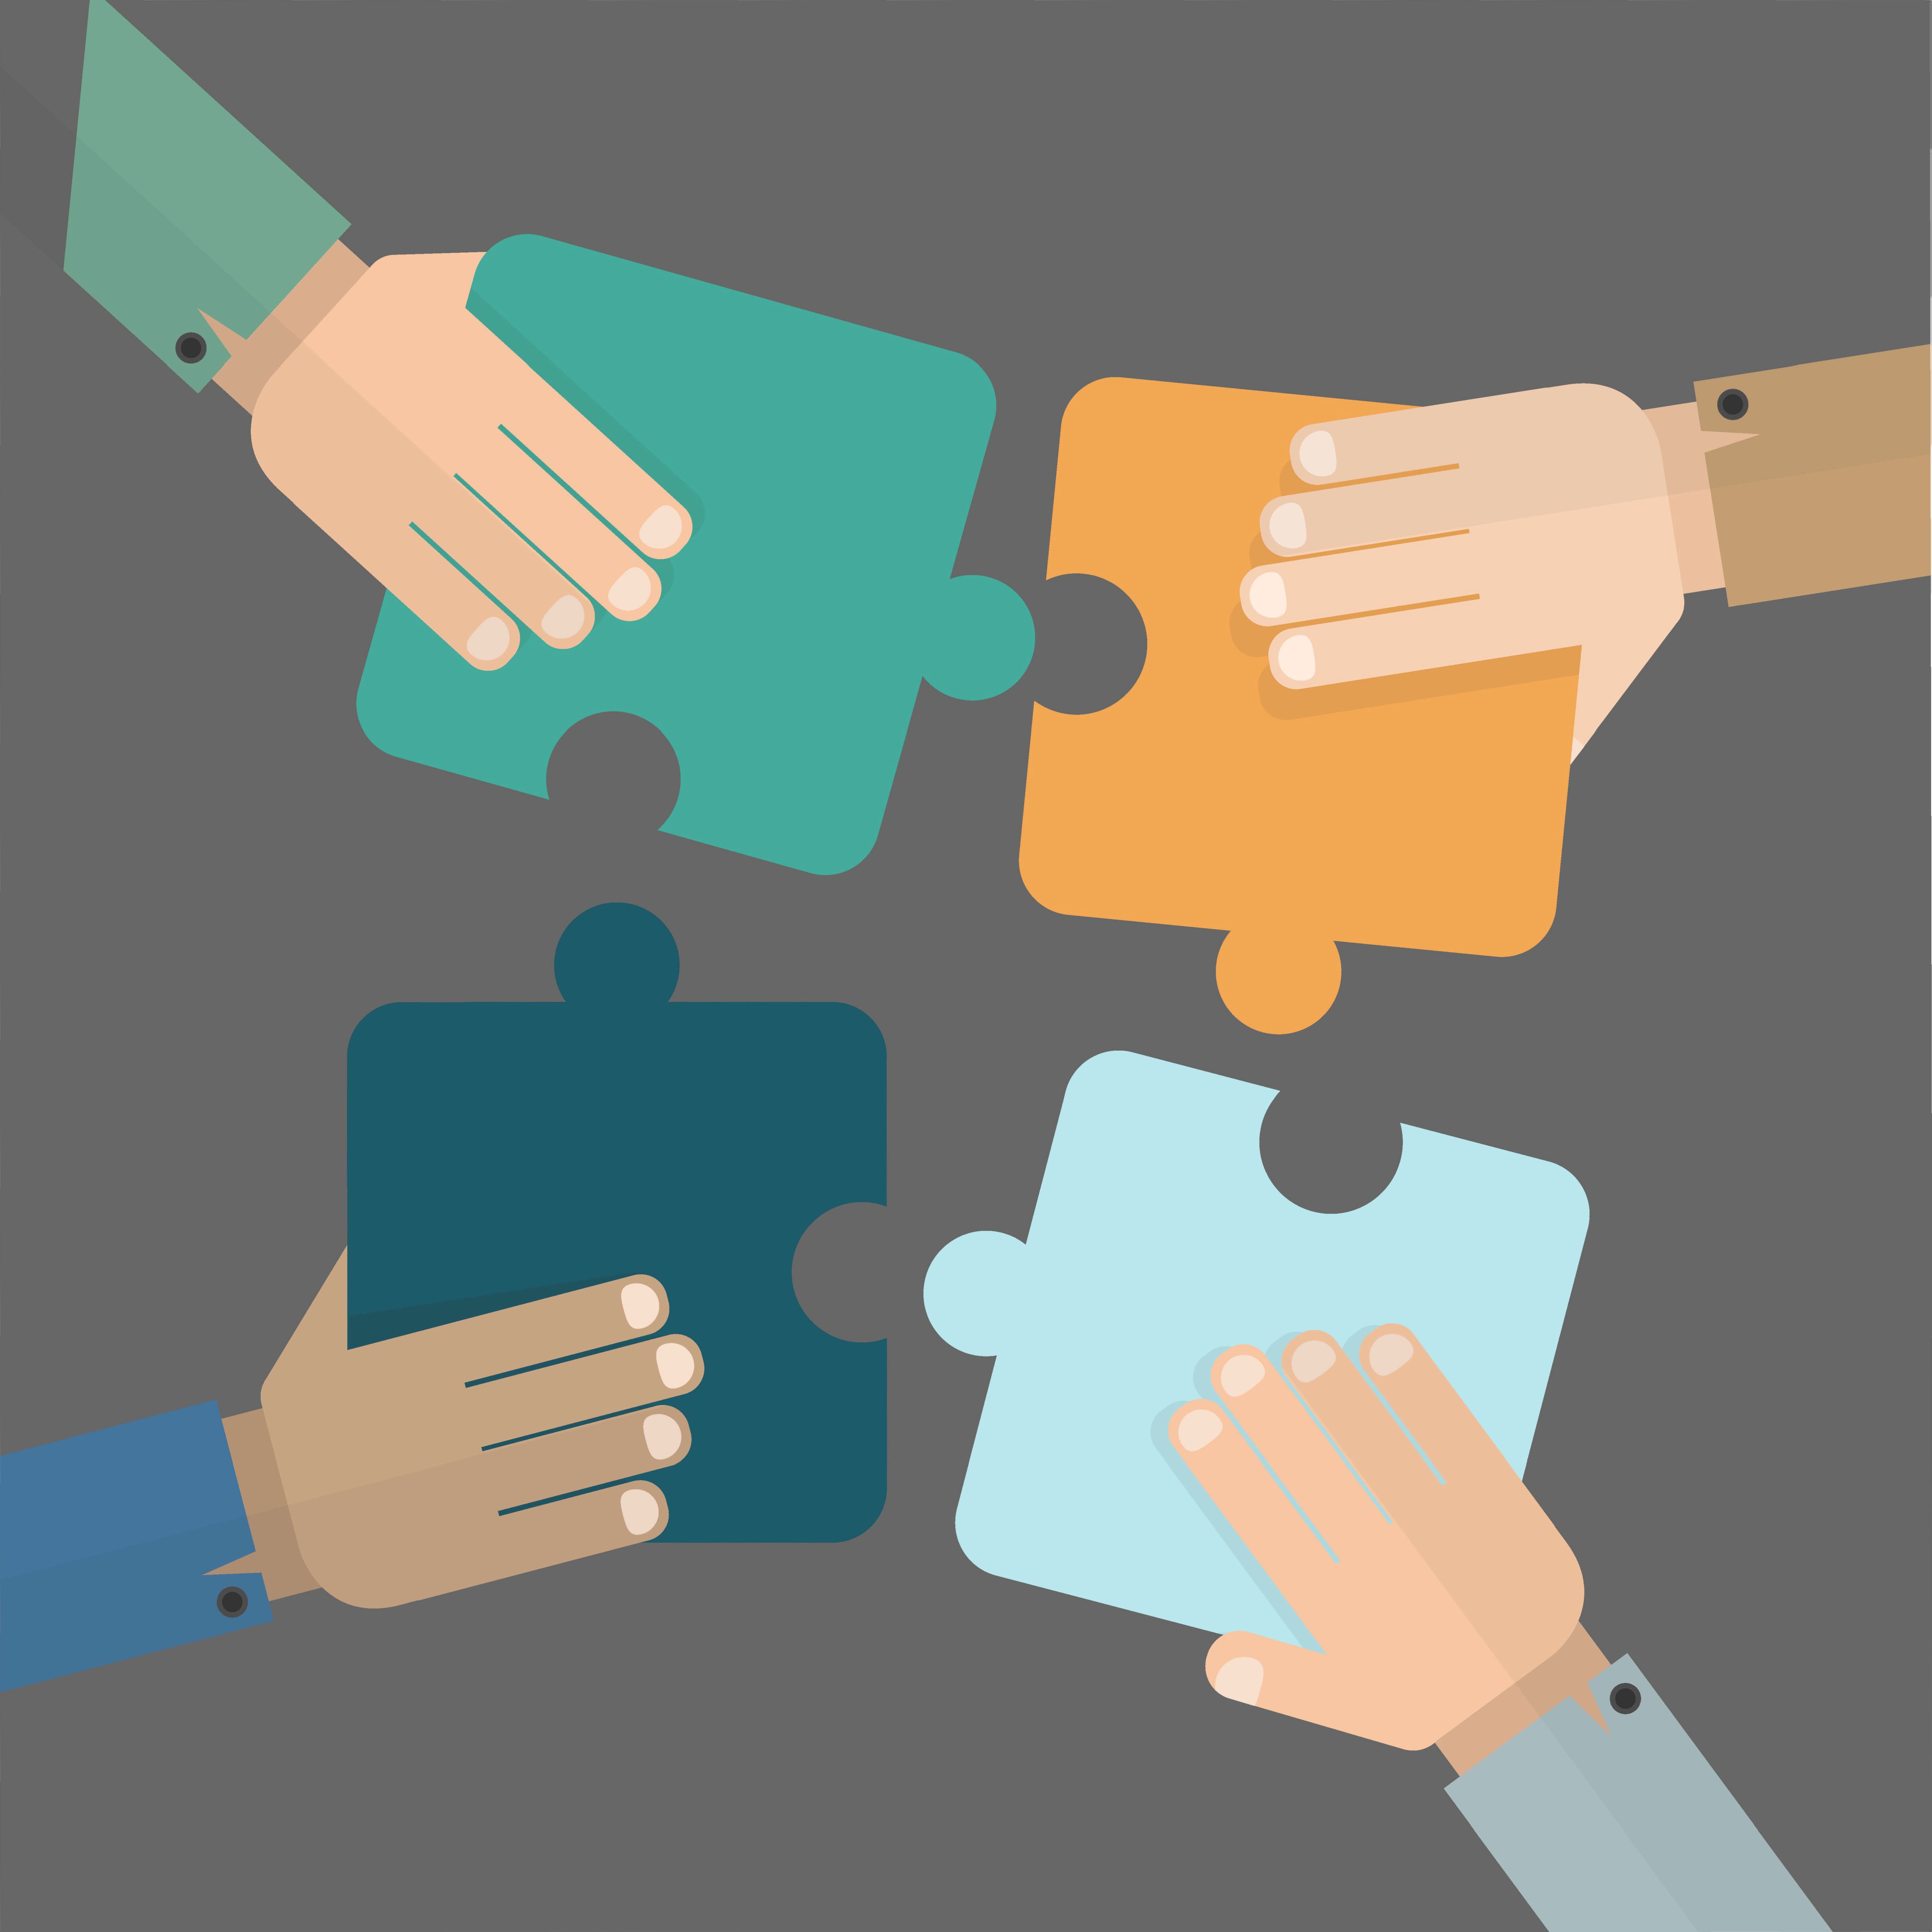 Illustration of multiple hands joining puzzle pieces